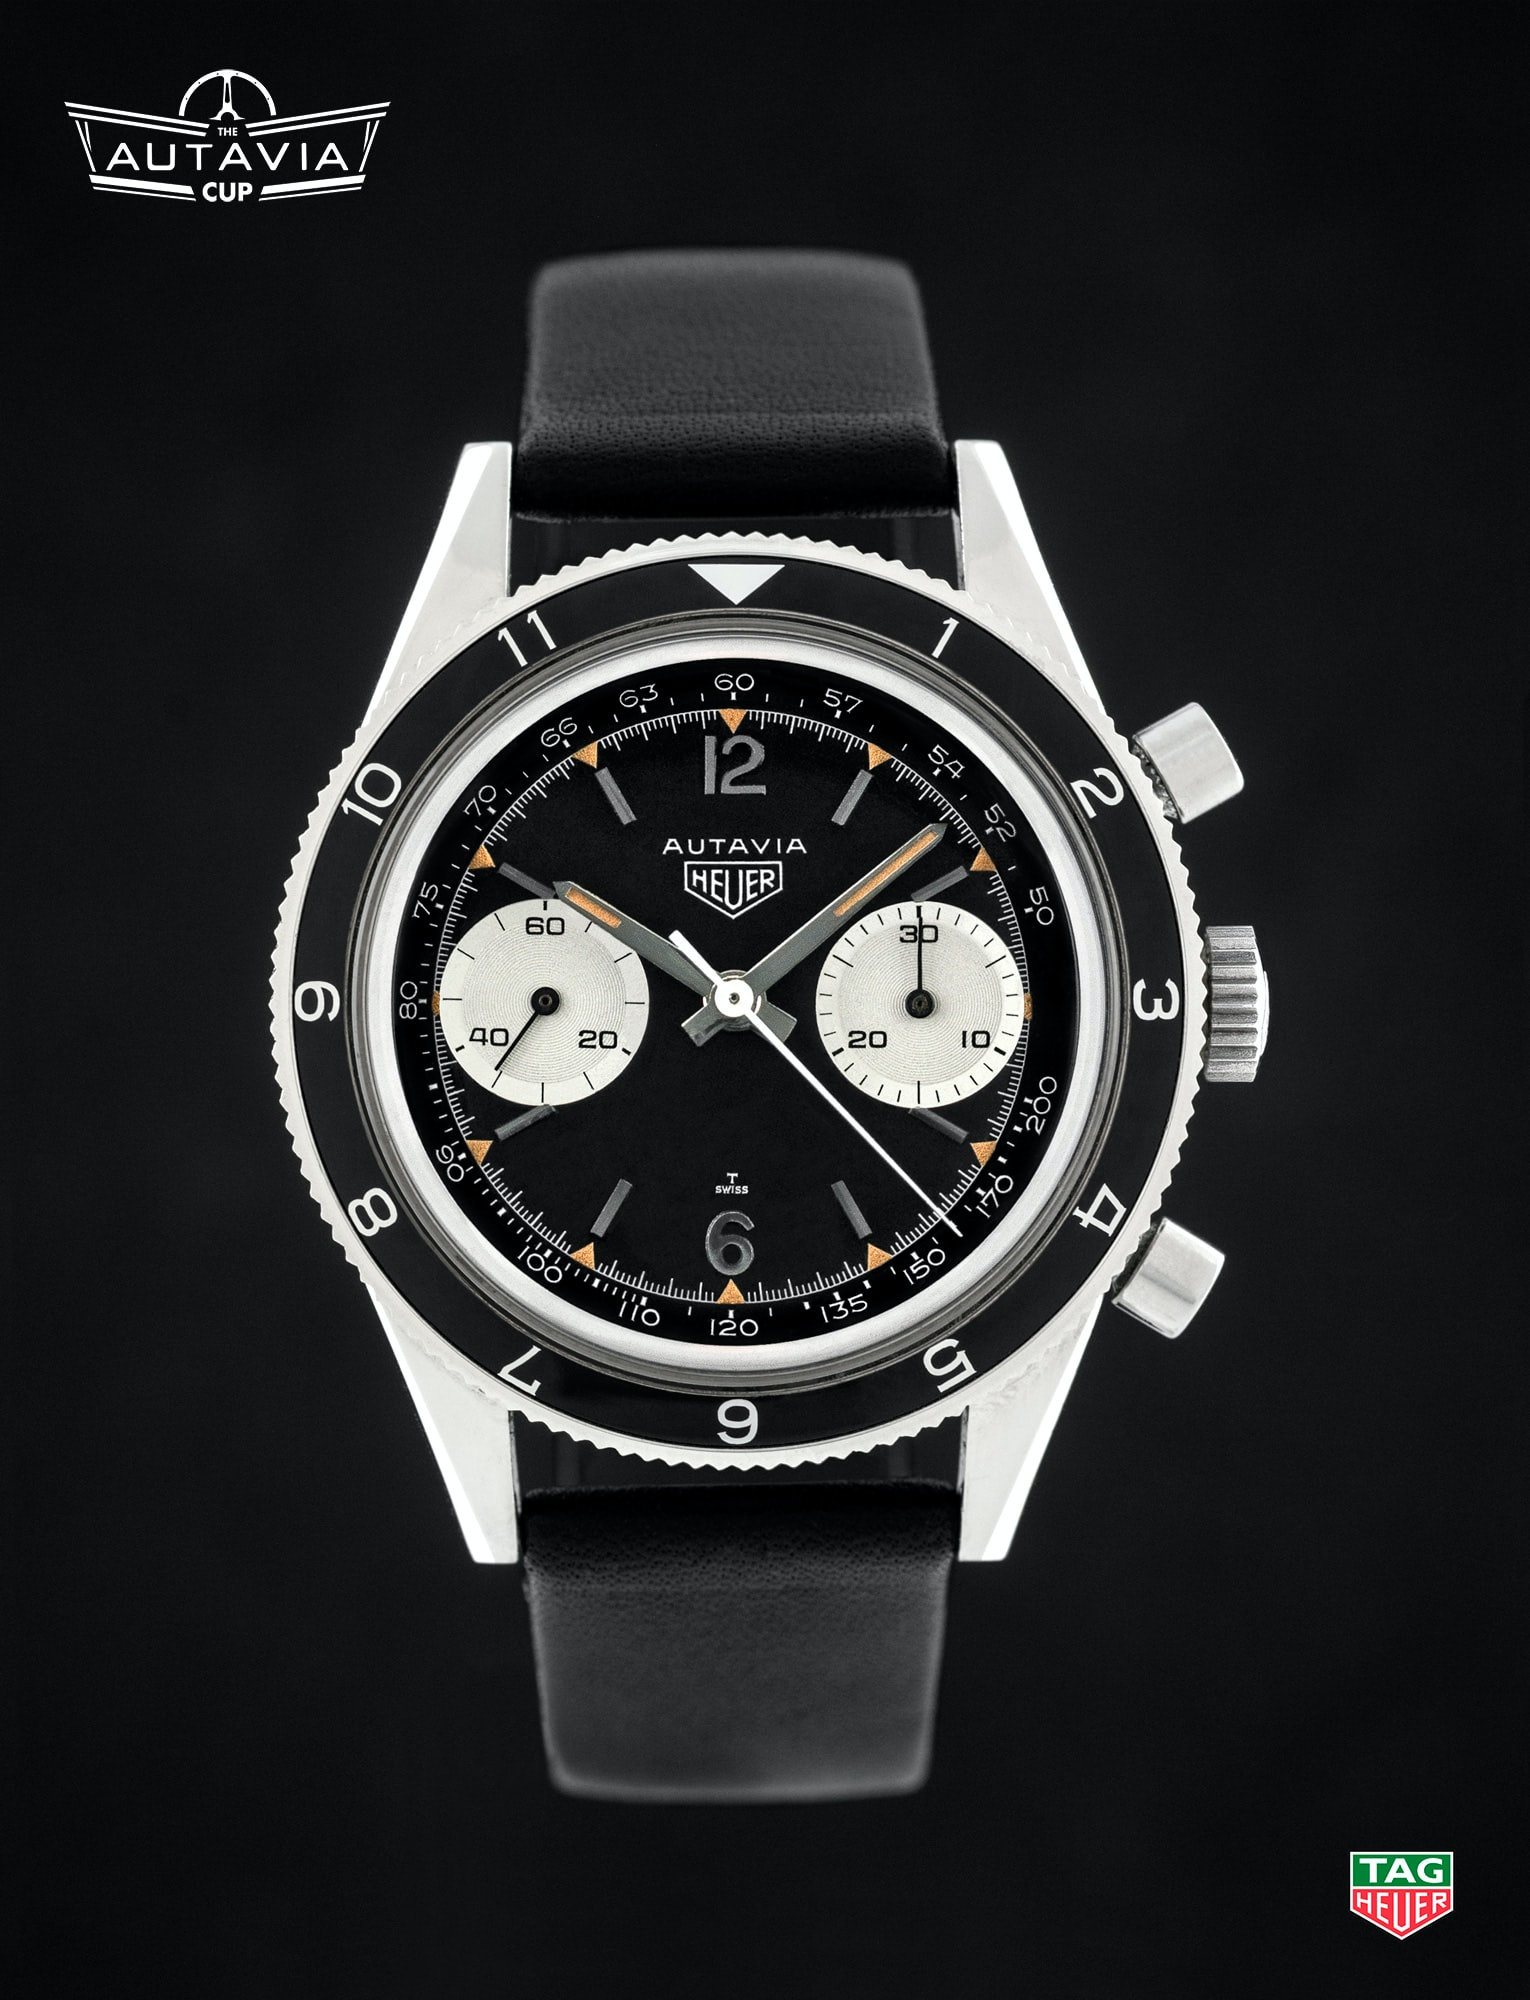 Heuer Autavia Ref. 3646 Tachy TAG Heuer Will Relaunch The Autavia In 2017 – And Fans Get To Choose The Model TAG Heuer Will Relaunch The Autavia In 2017 – And Fans Get To Choose The Model 07 3646 Tachy